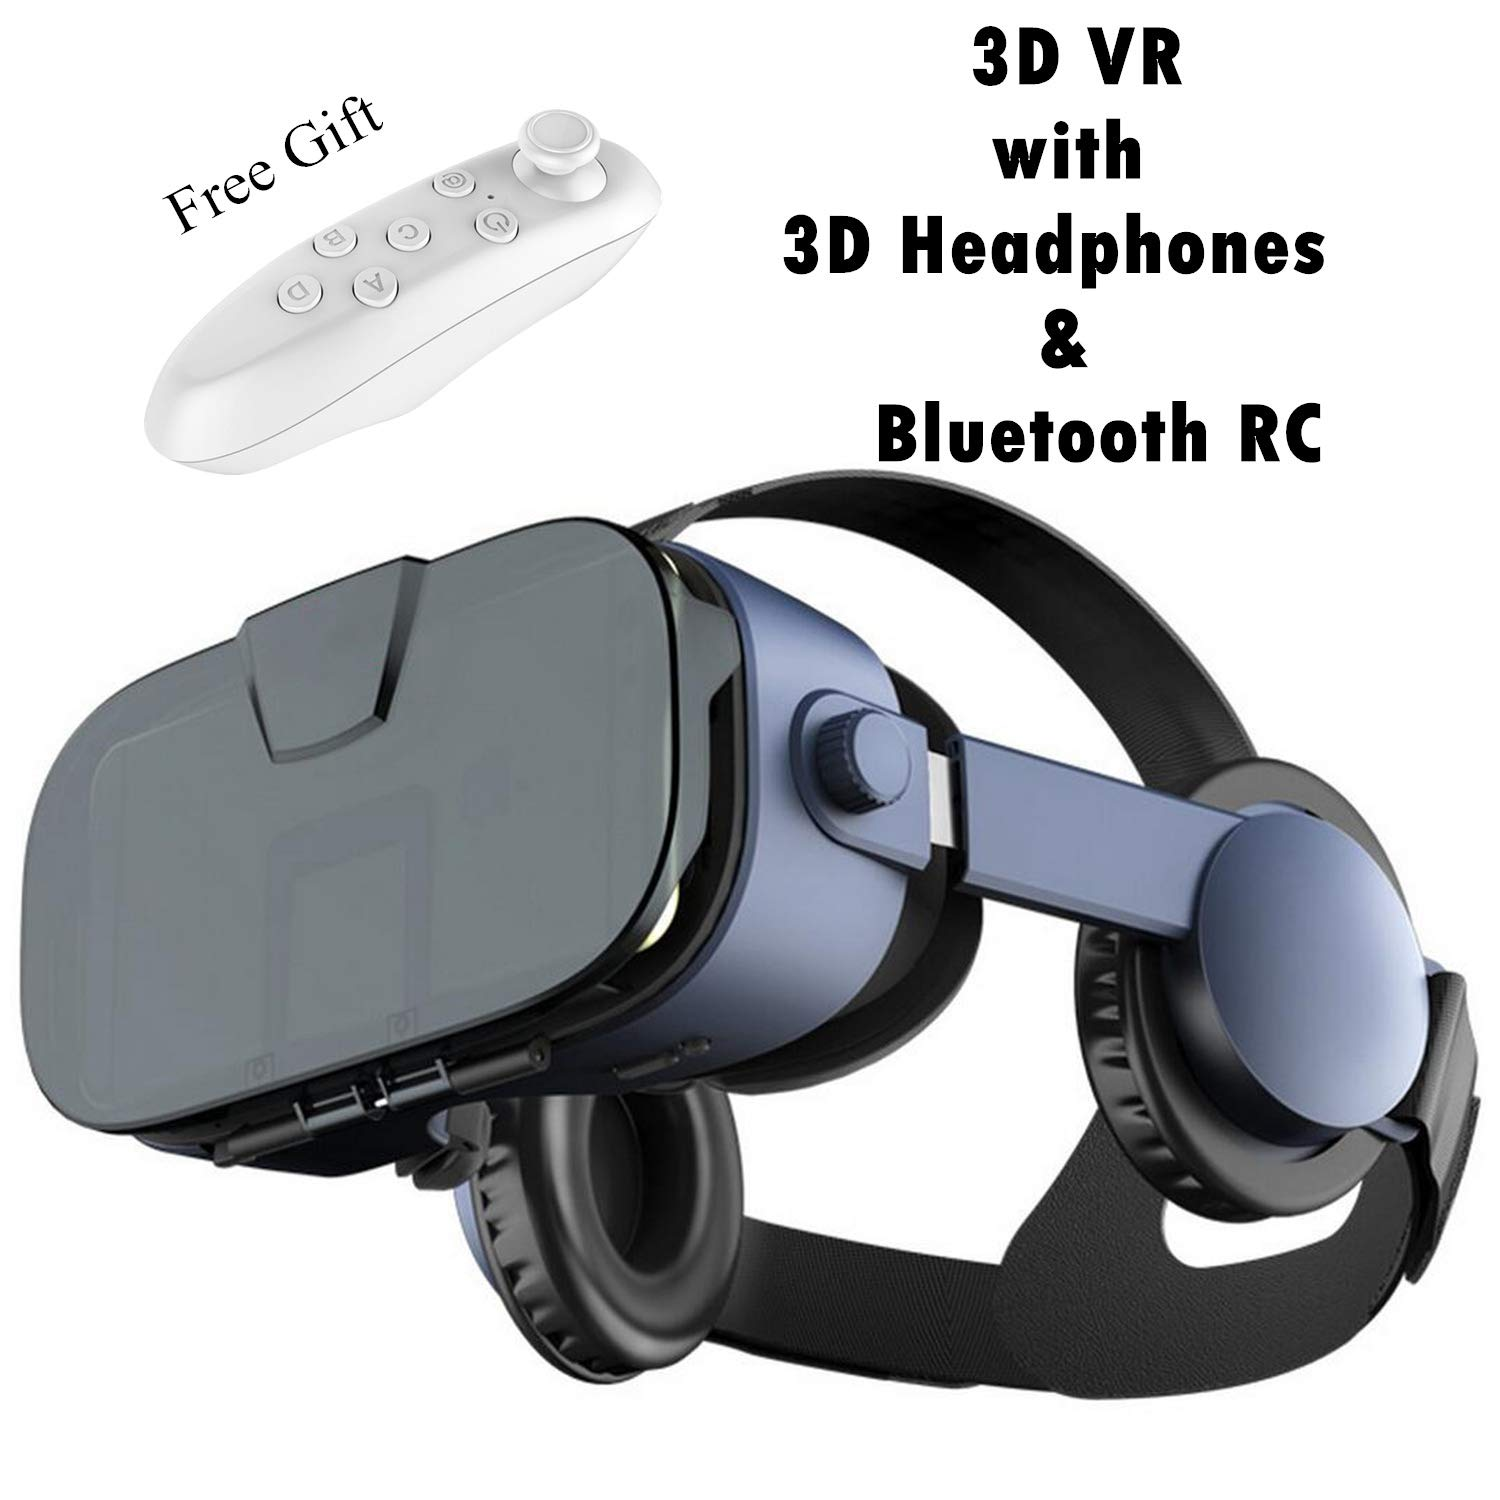 "Virtual Reality Headset, 2018 VR Glasses w/ 3D Headphones &Remote(Gift), 3D IMAX Movie/Game Viewer Compatible for iPhone Xs XR X 8 7 6 S Plus Samsung Galaxy S9 S8 S7 S6 Edge + etc 4.0-6.33"" Cellphone TSANGLIGHT AMFM0000236"